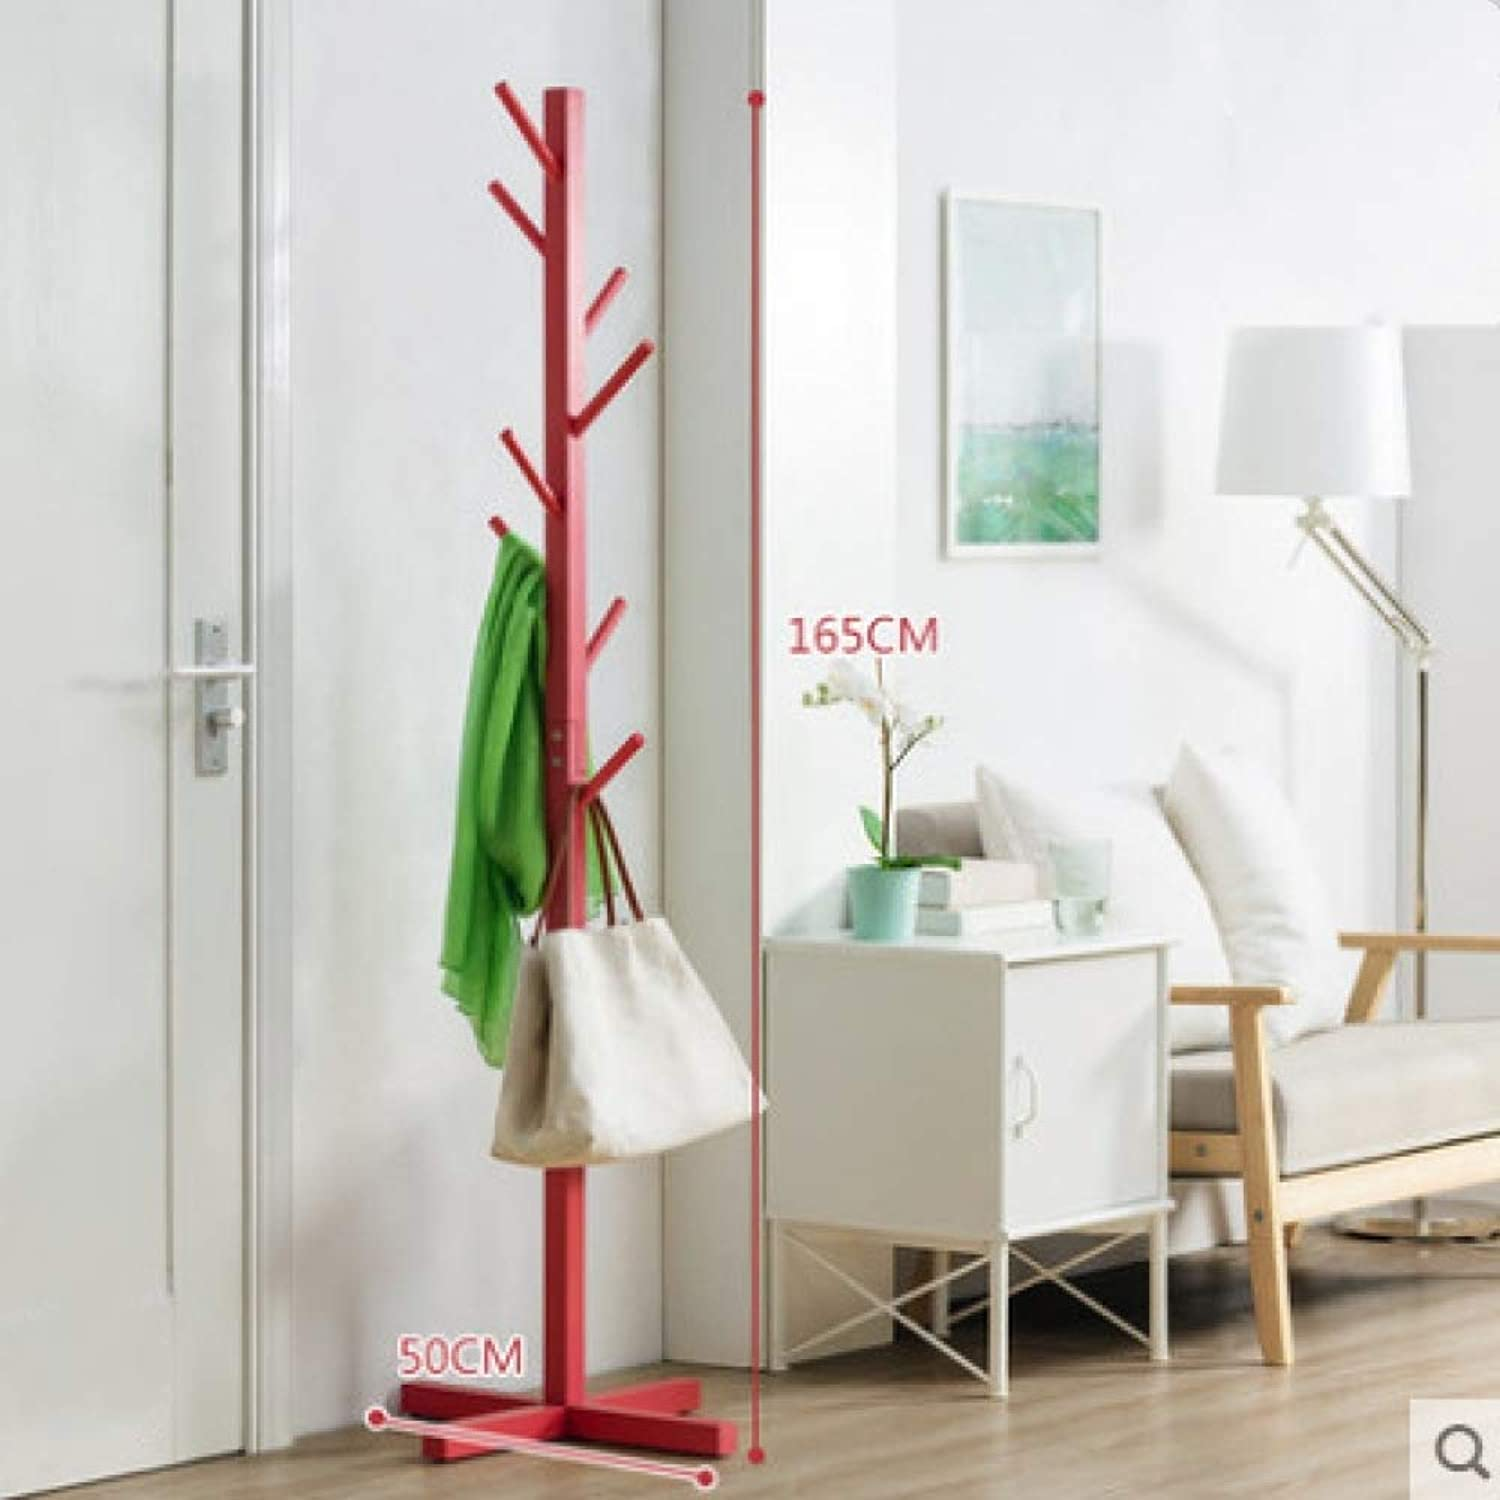 Dixinla Coat Stand,Nordic Simple Solid Wood Coat Rack greenical Living Room Bedroom Hanger Decorative Furniture